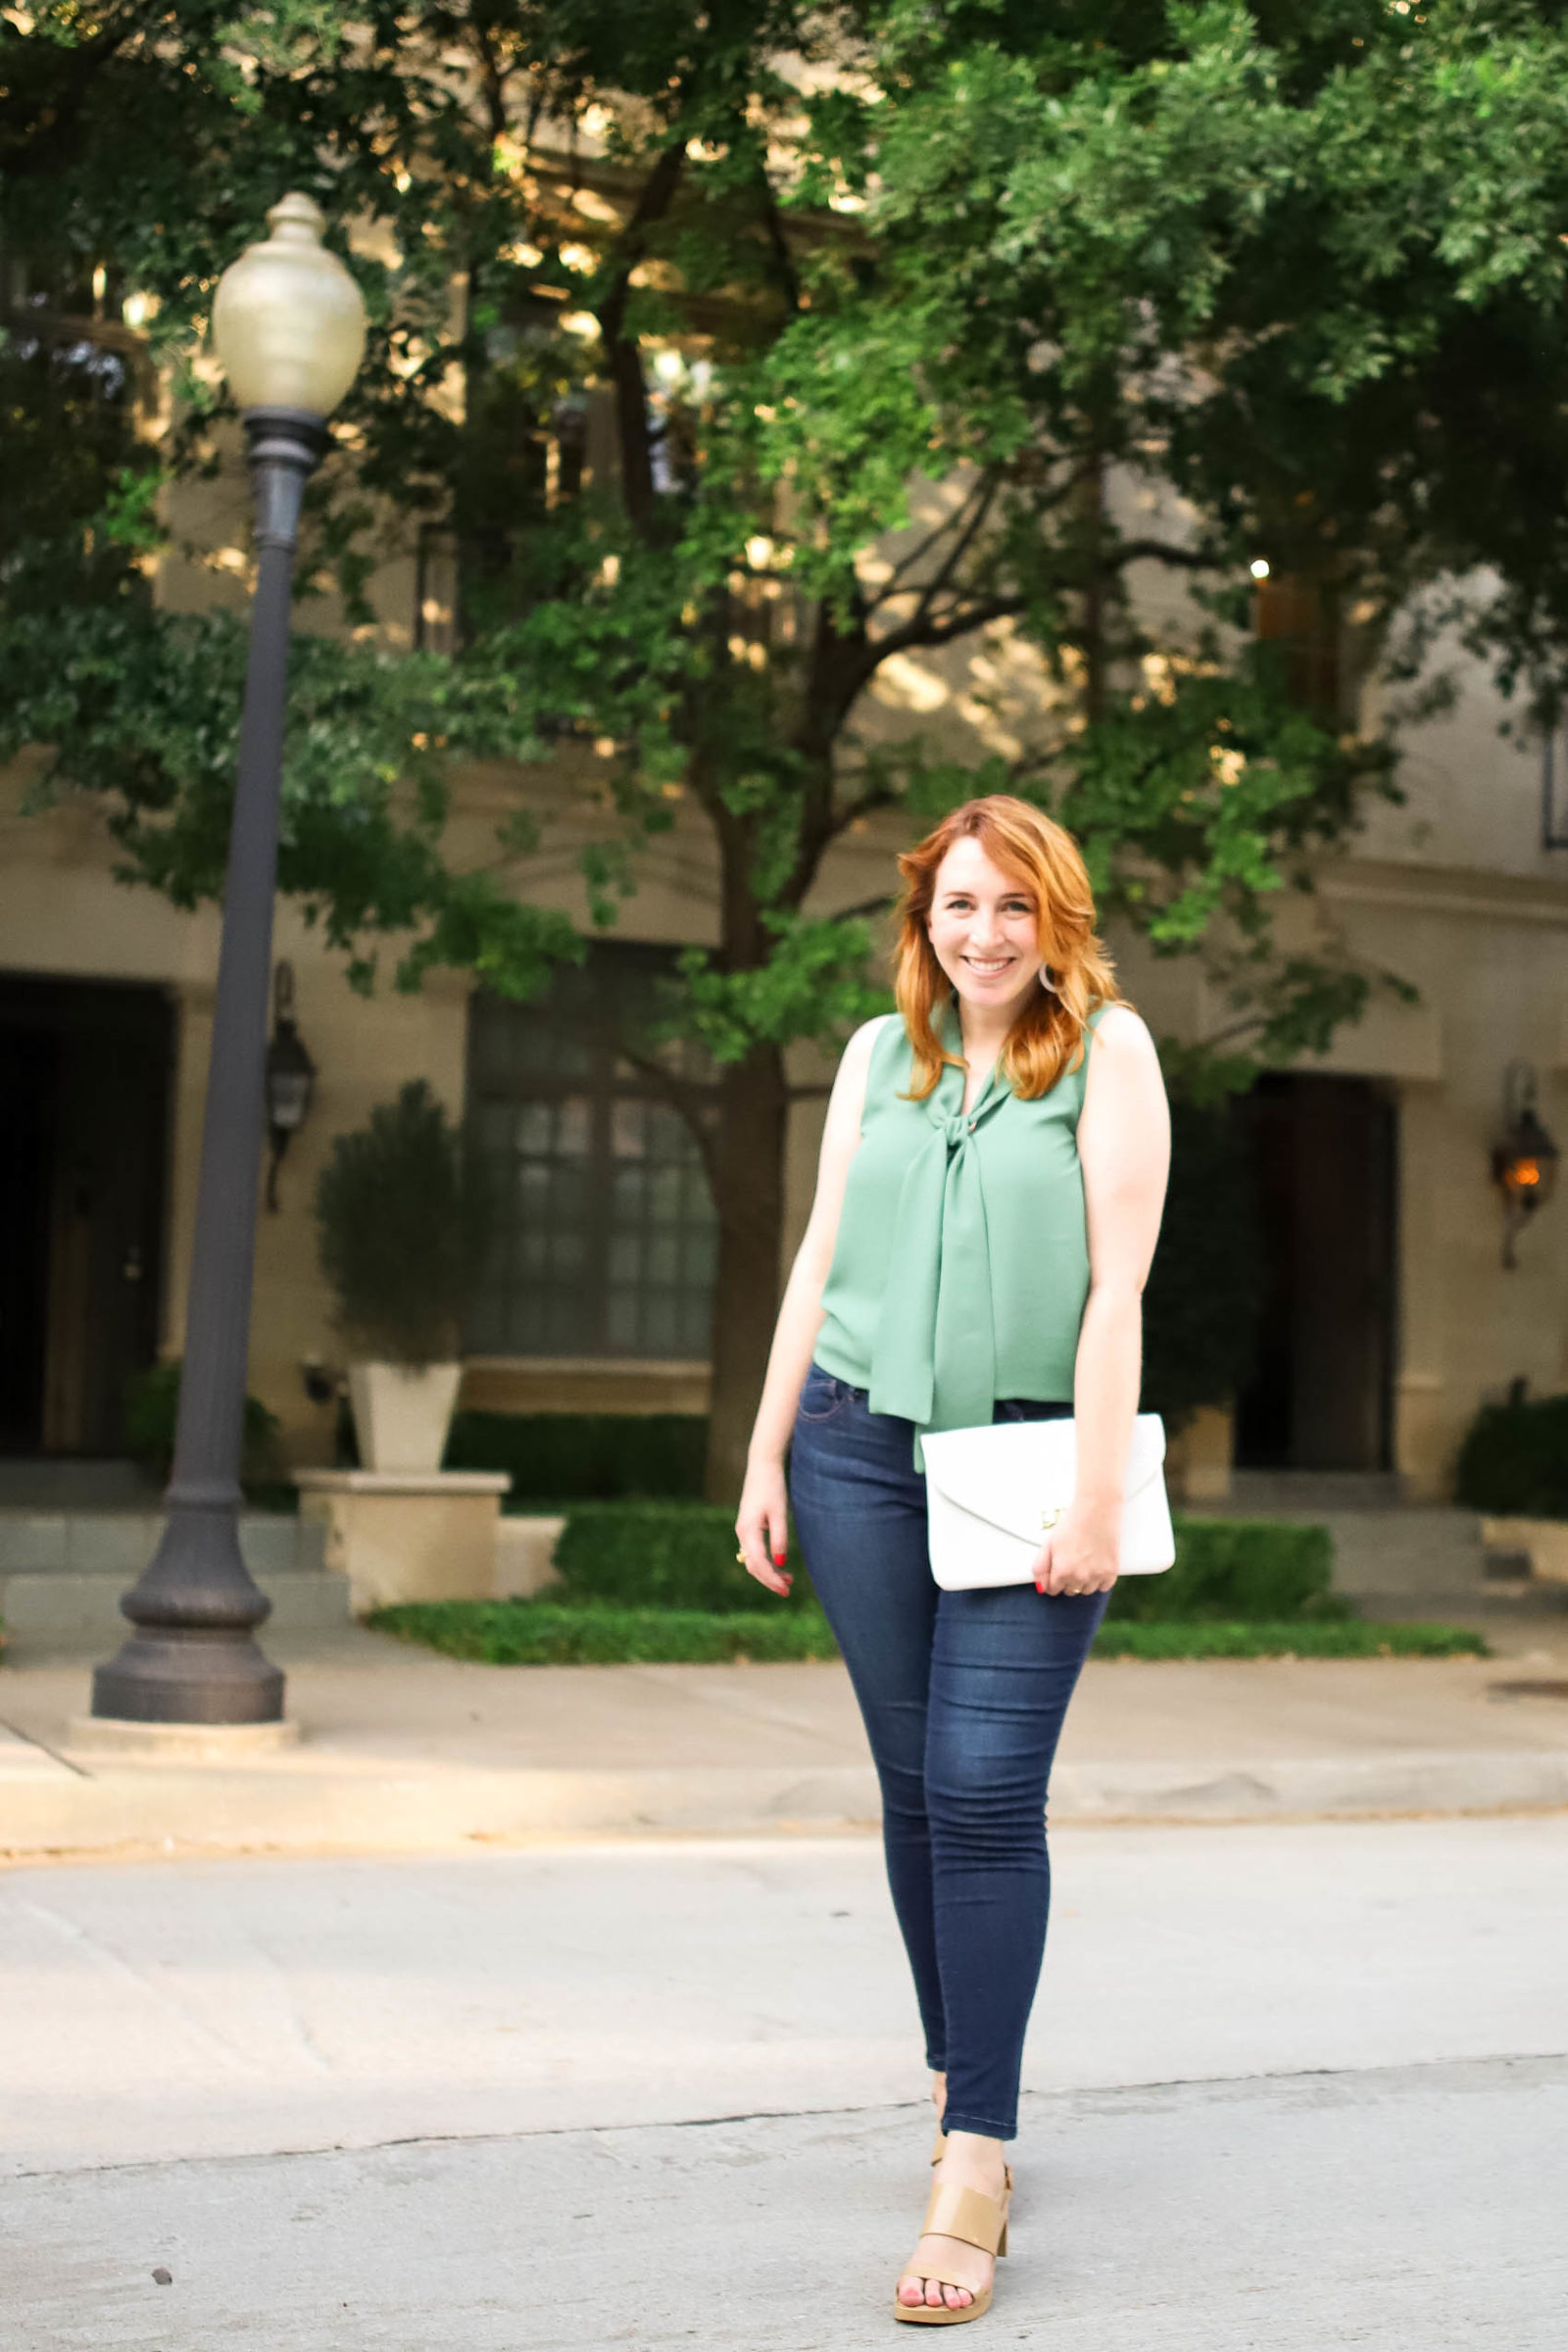 Blogger styles an outfit for a weeknight date with jeans and heels as she shares how she unwinds each day after her 9-to-5 job